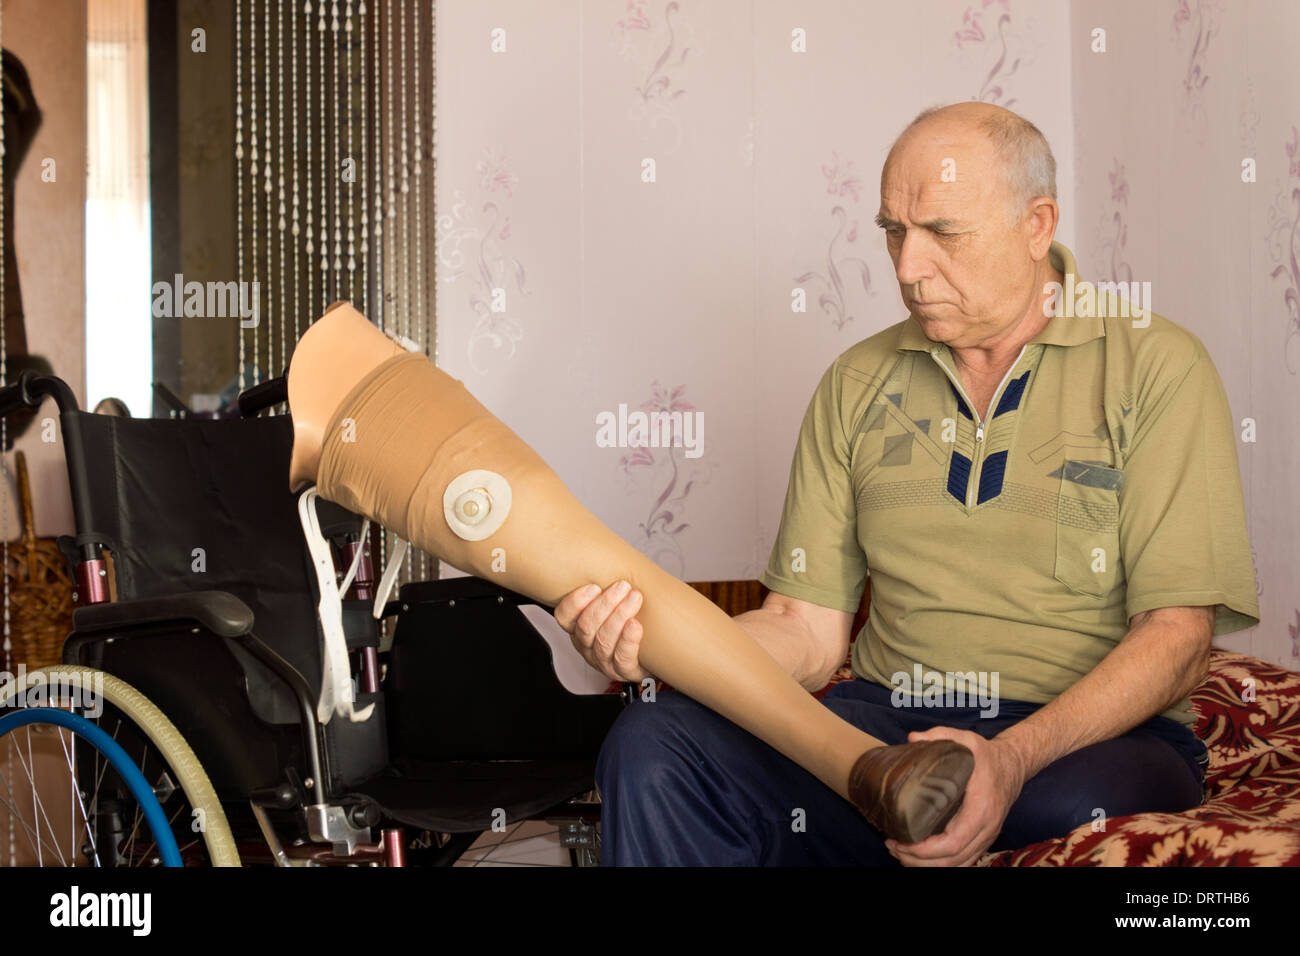 Senior disabled man sitting on a bed alongside his wheelchair holding a prosthetic leg or artificial limb - Stock Image